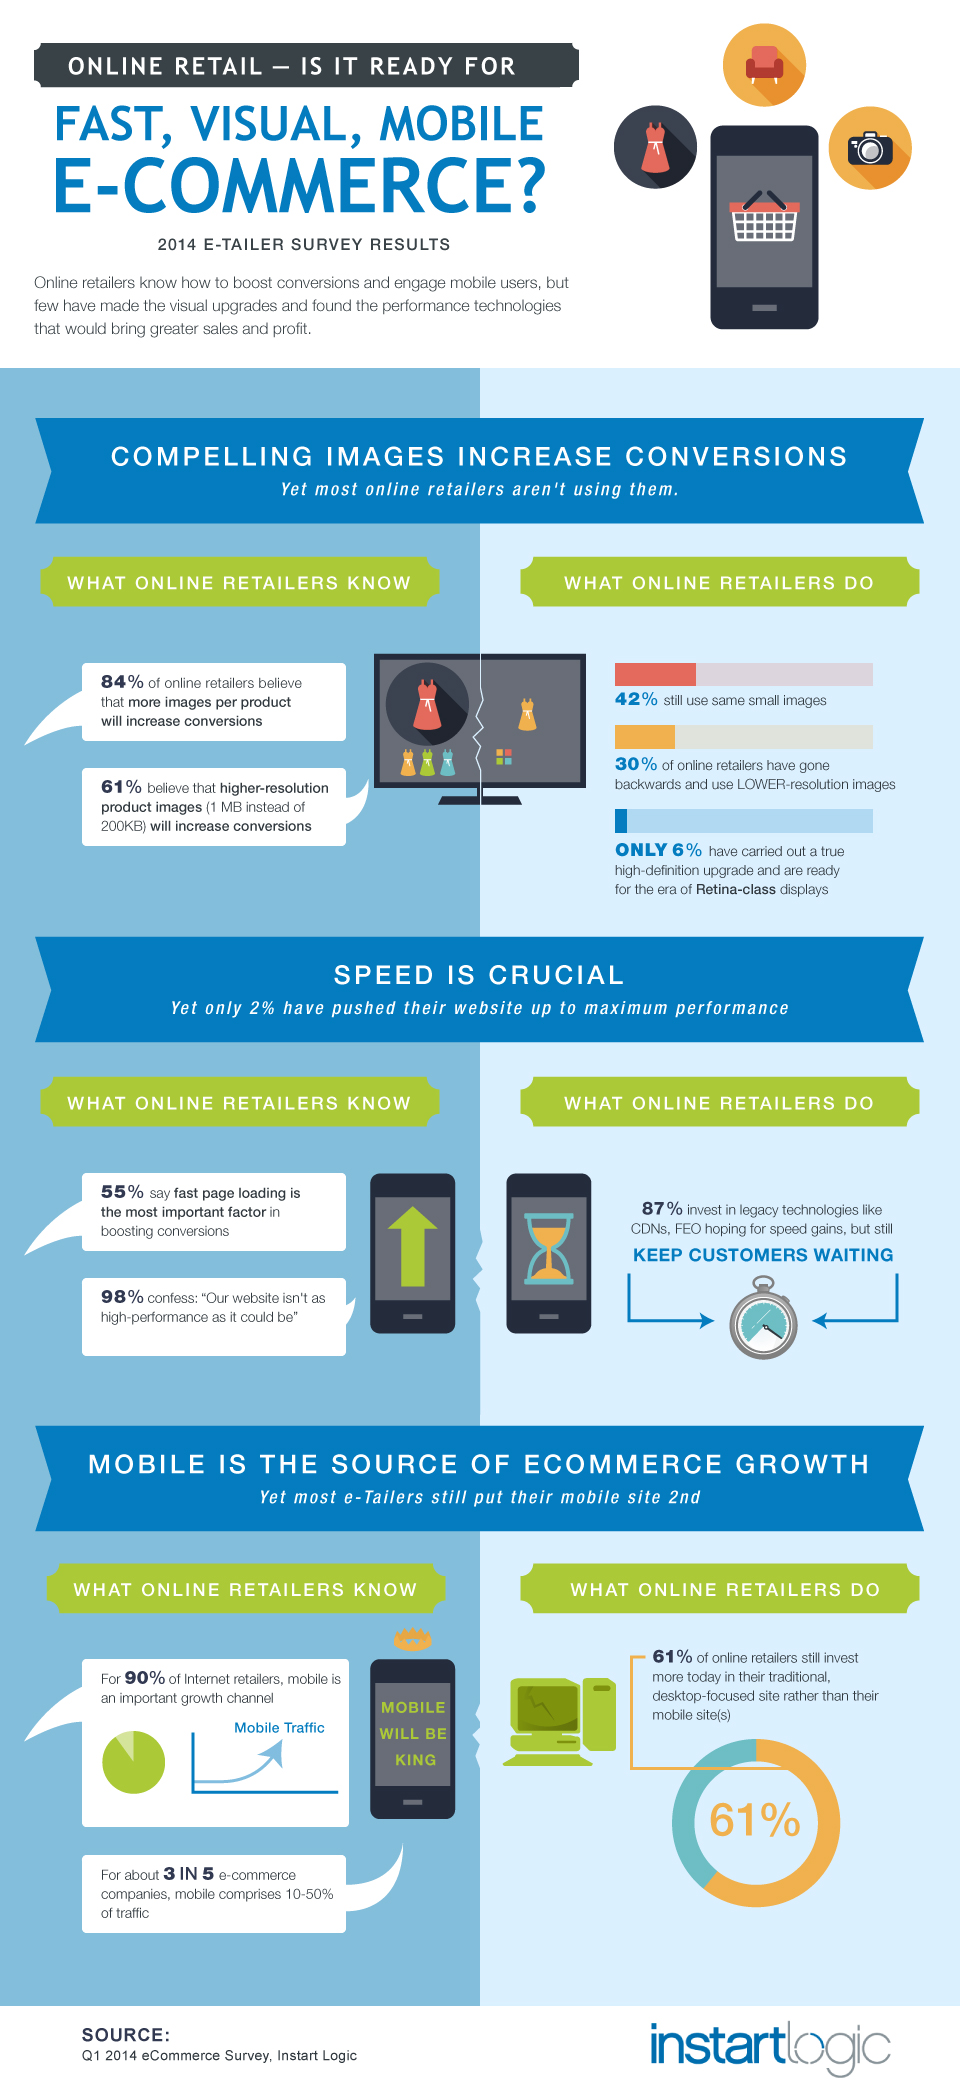 Why Online Retailers Are Missing Out On Mobile Infographic Ecommerce Ecommerce Infographic Online Infographic